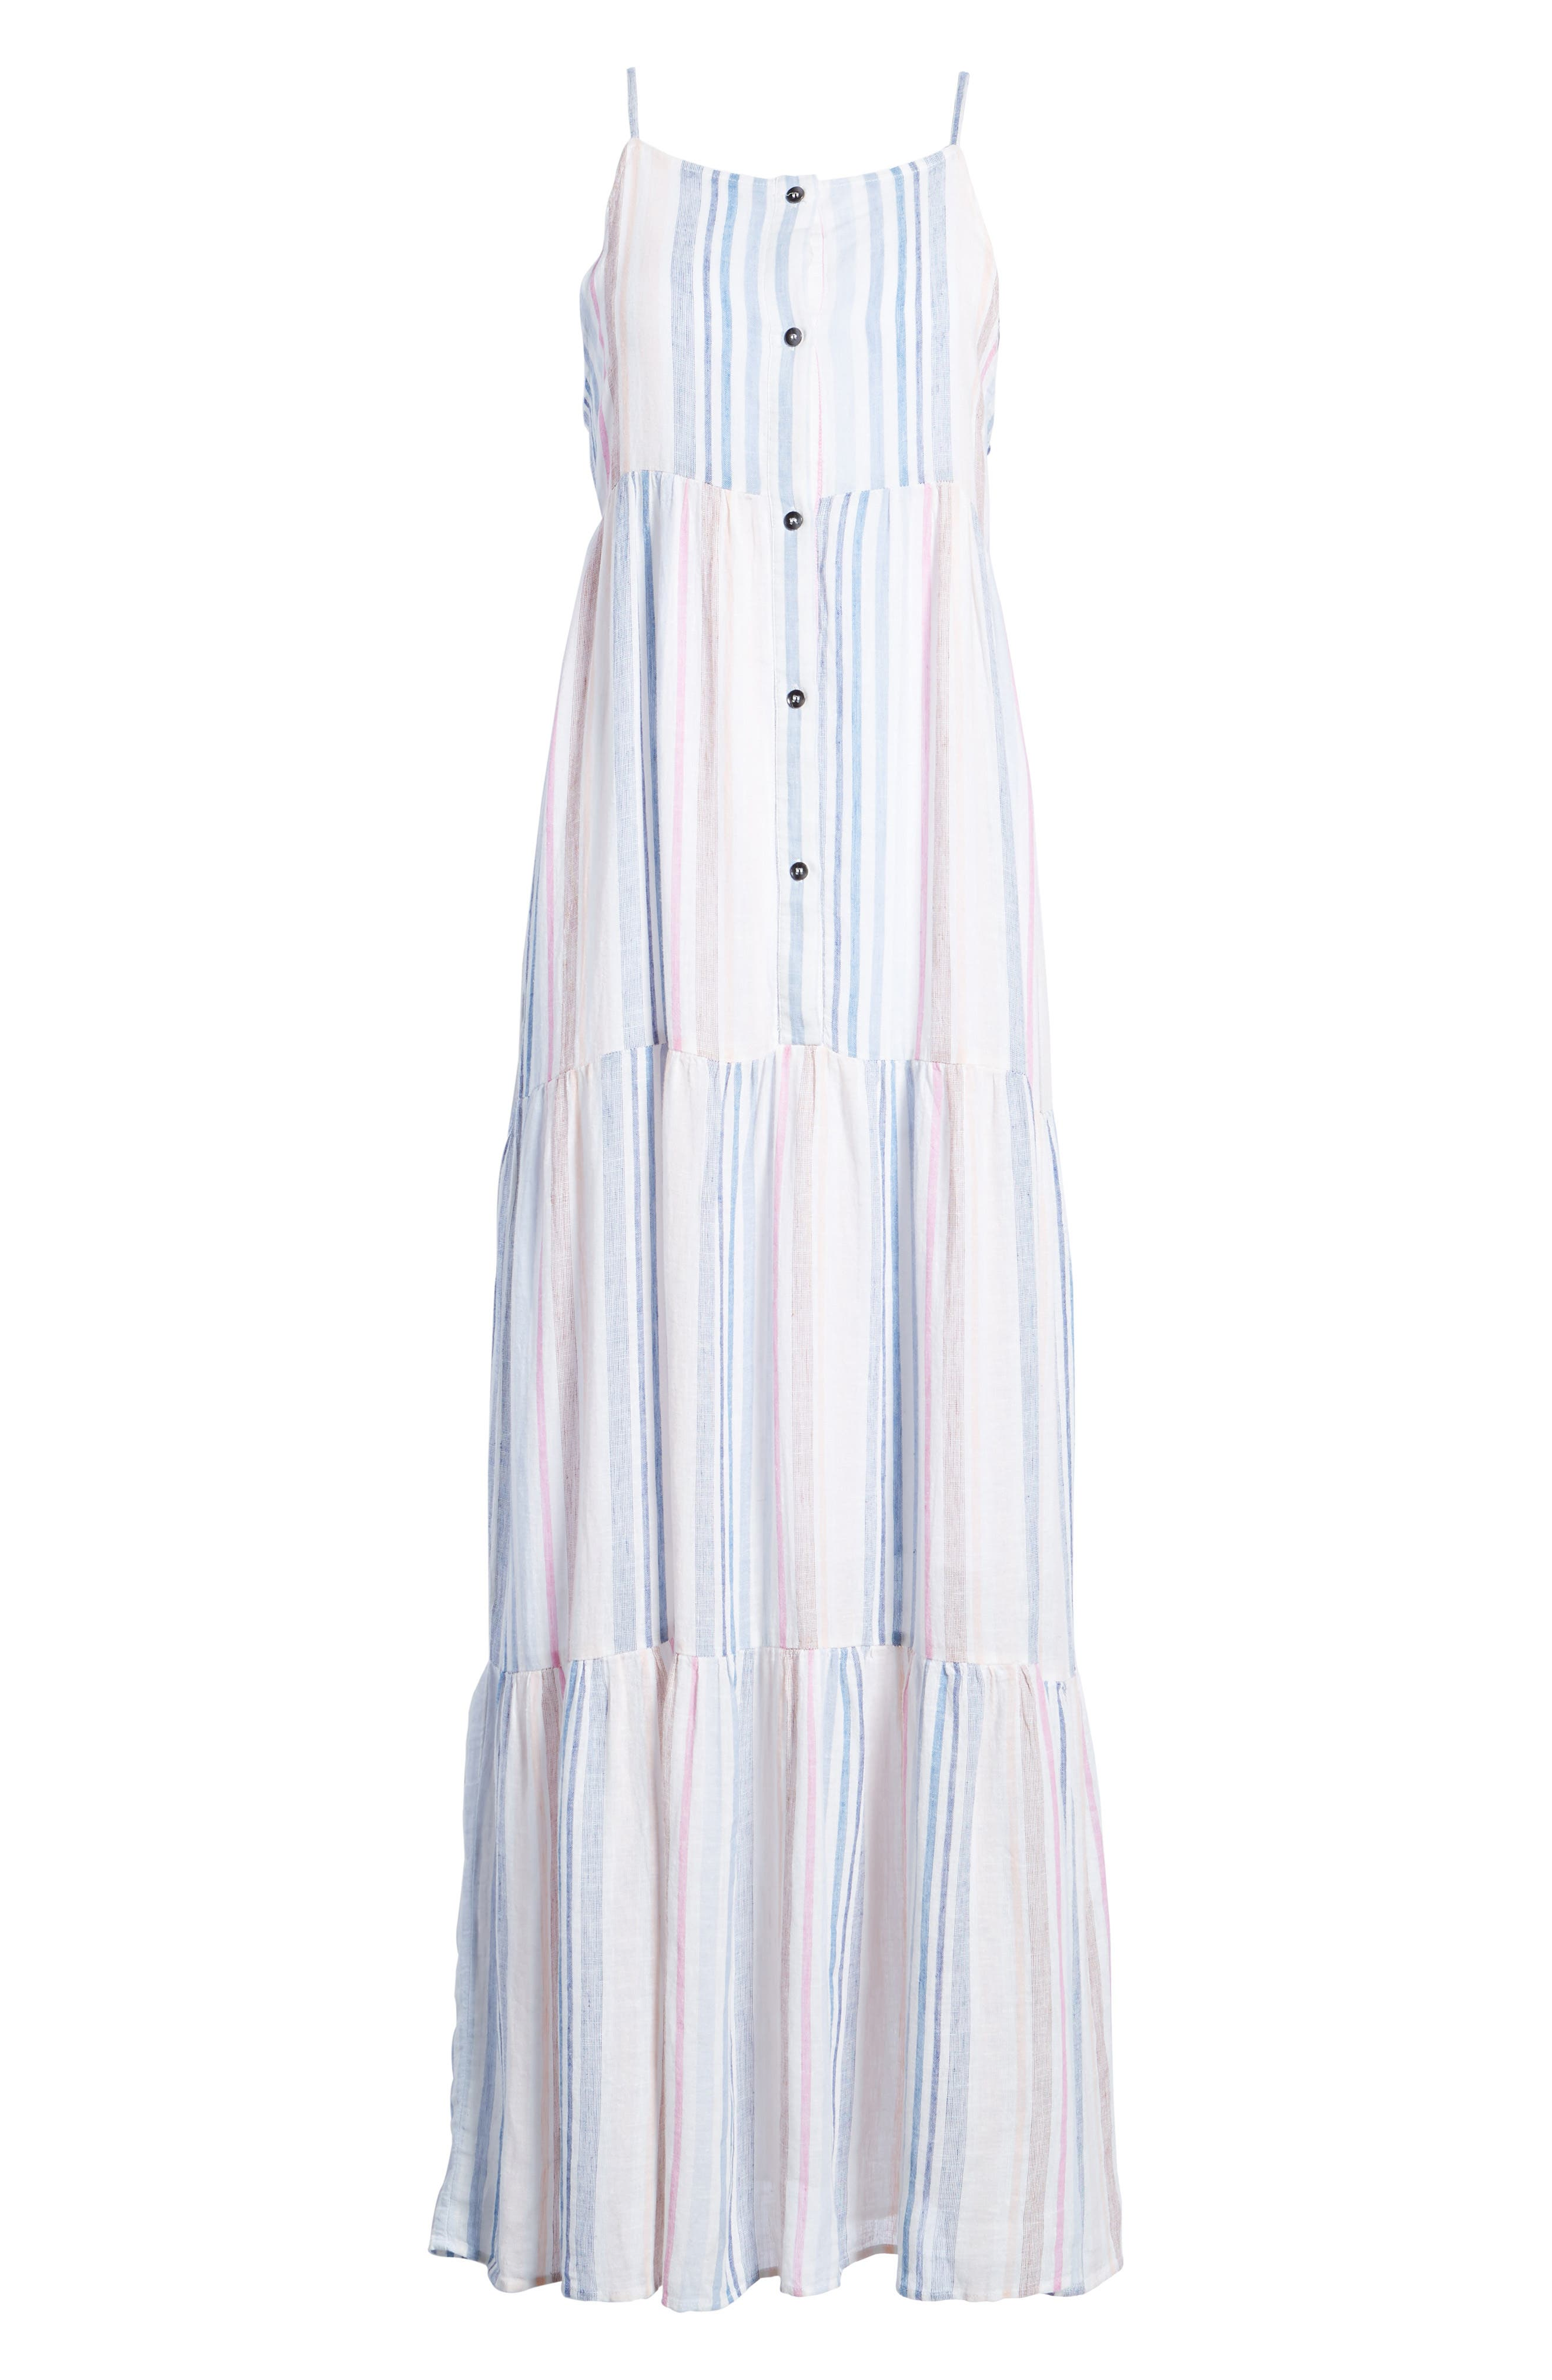 Multistripe Linen Maxi Dress,                             Alternate thumbnail 6, color,                             Multi